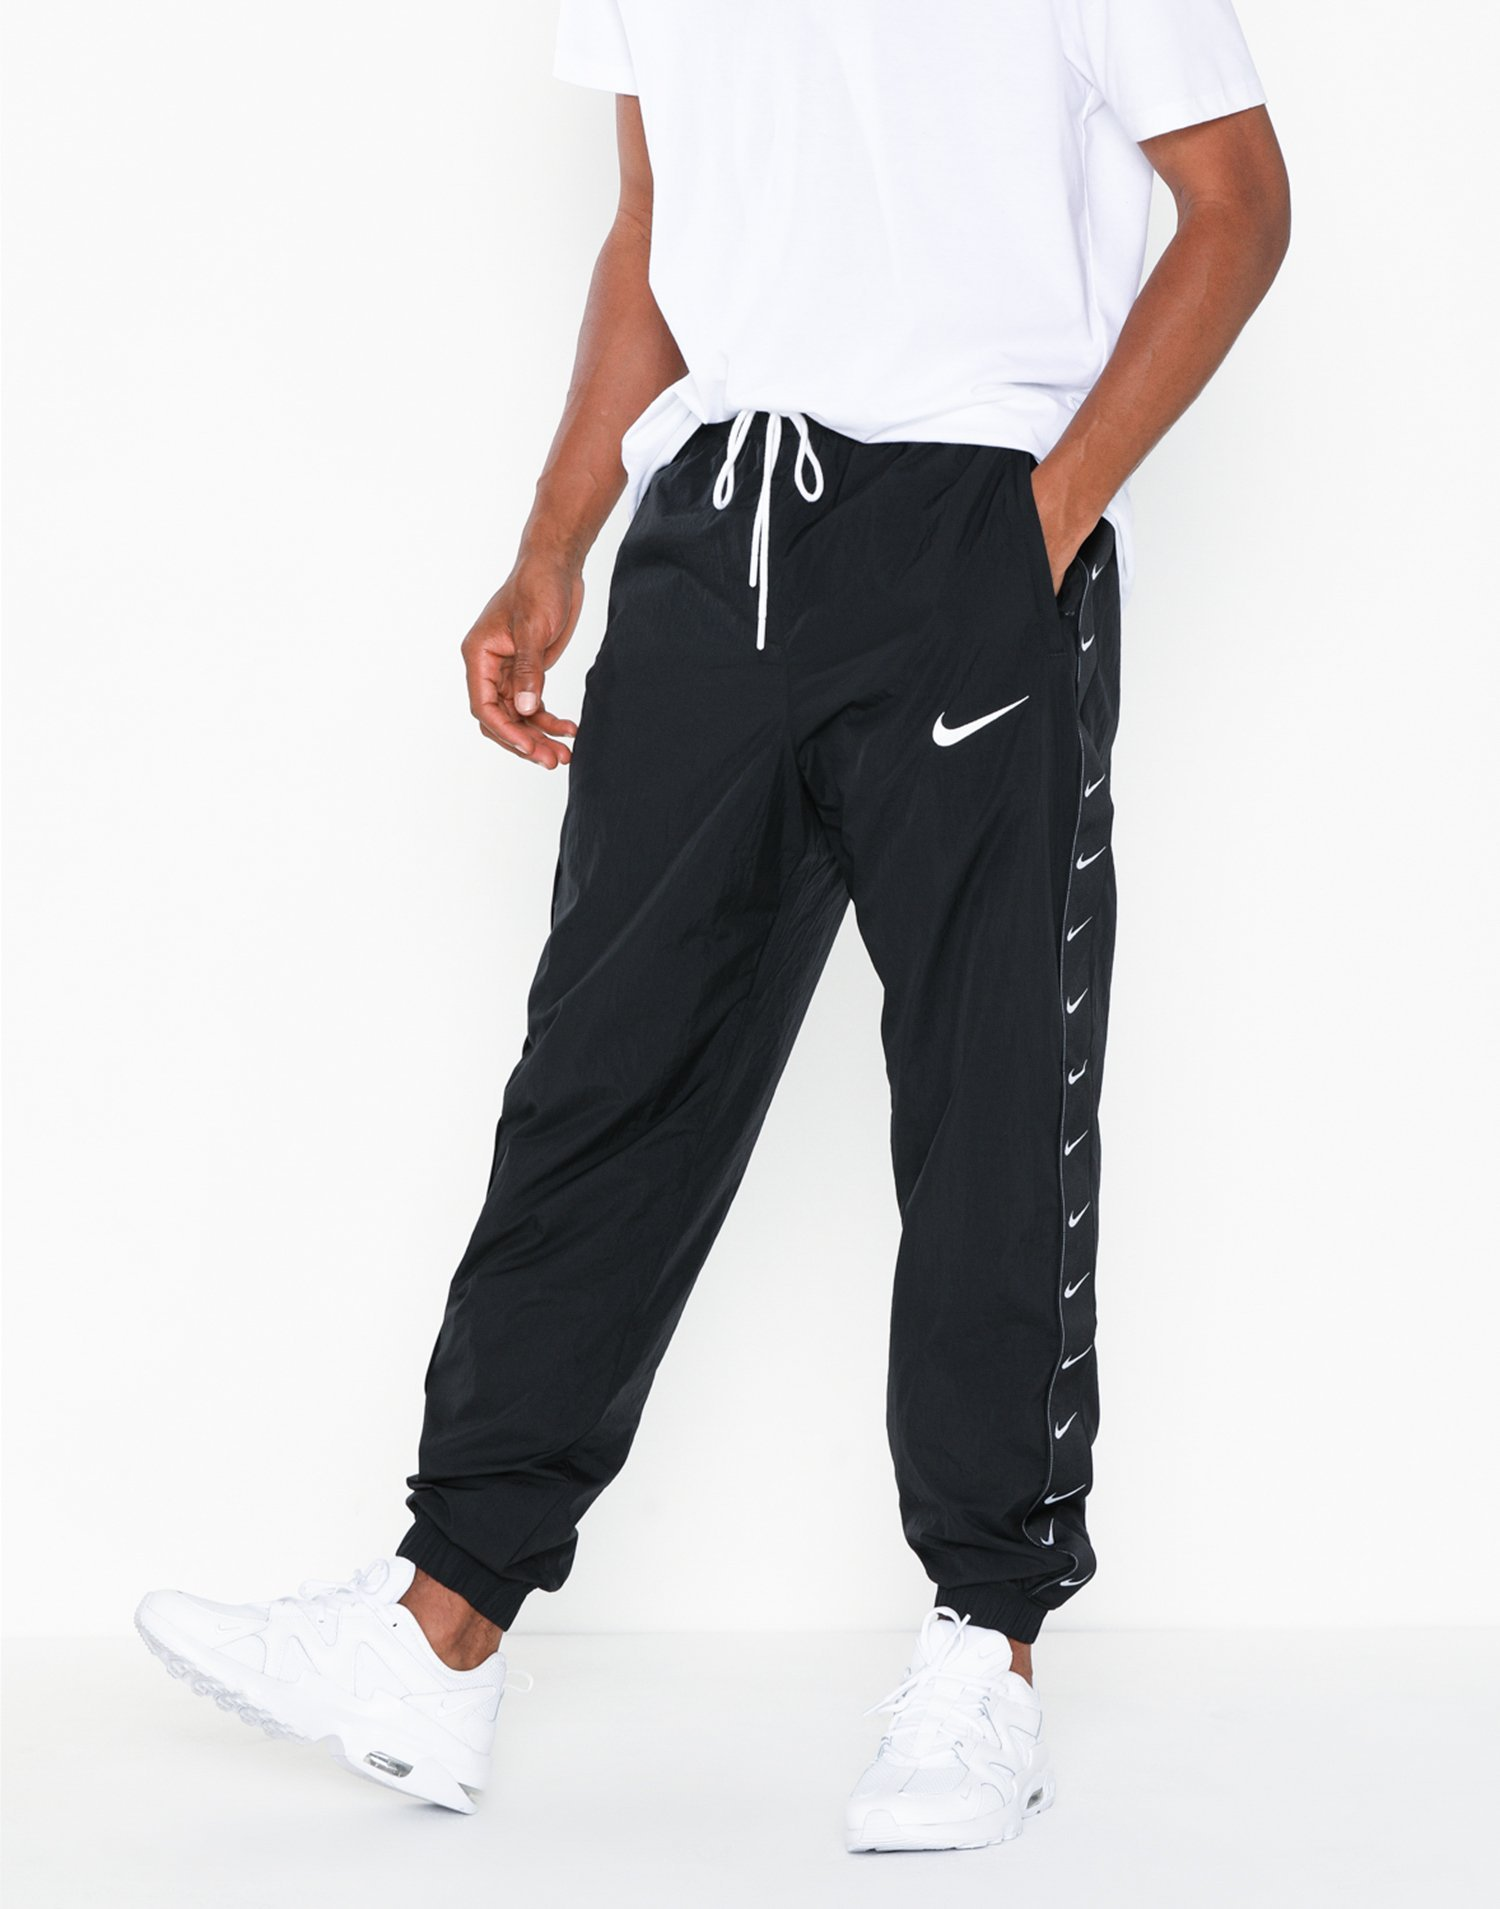 swoosh pants